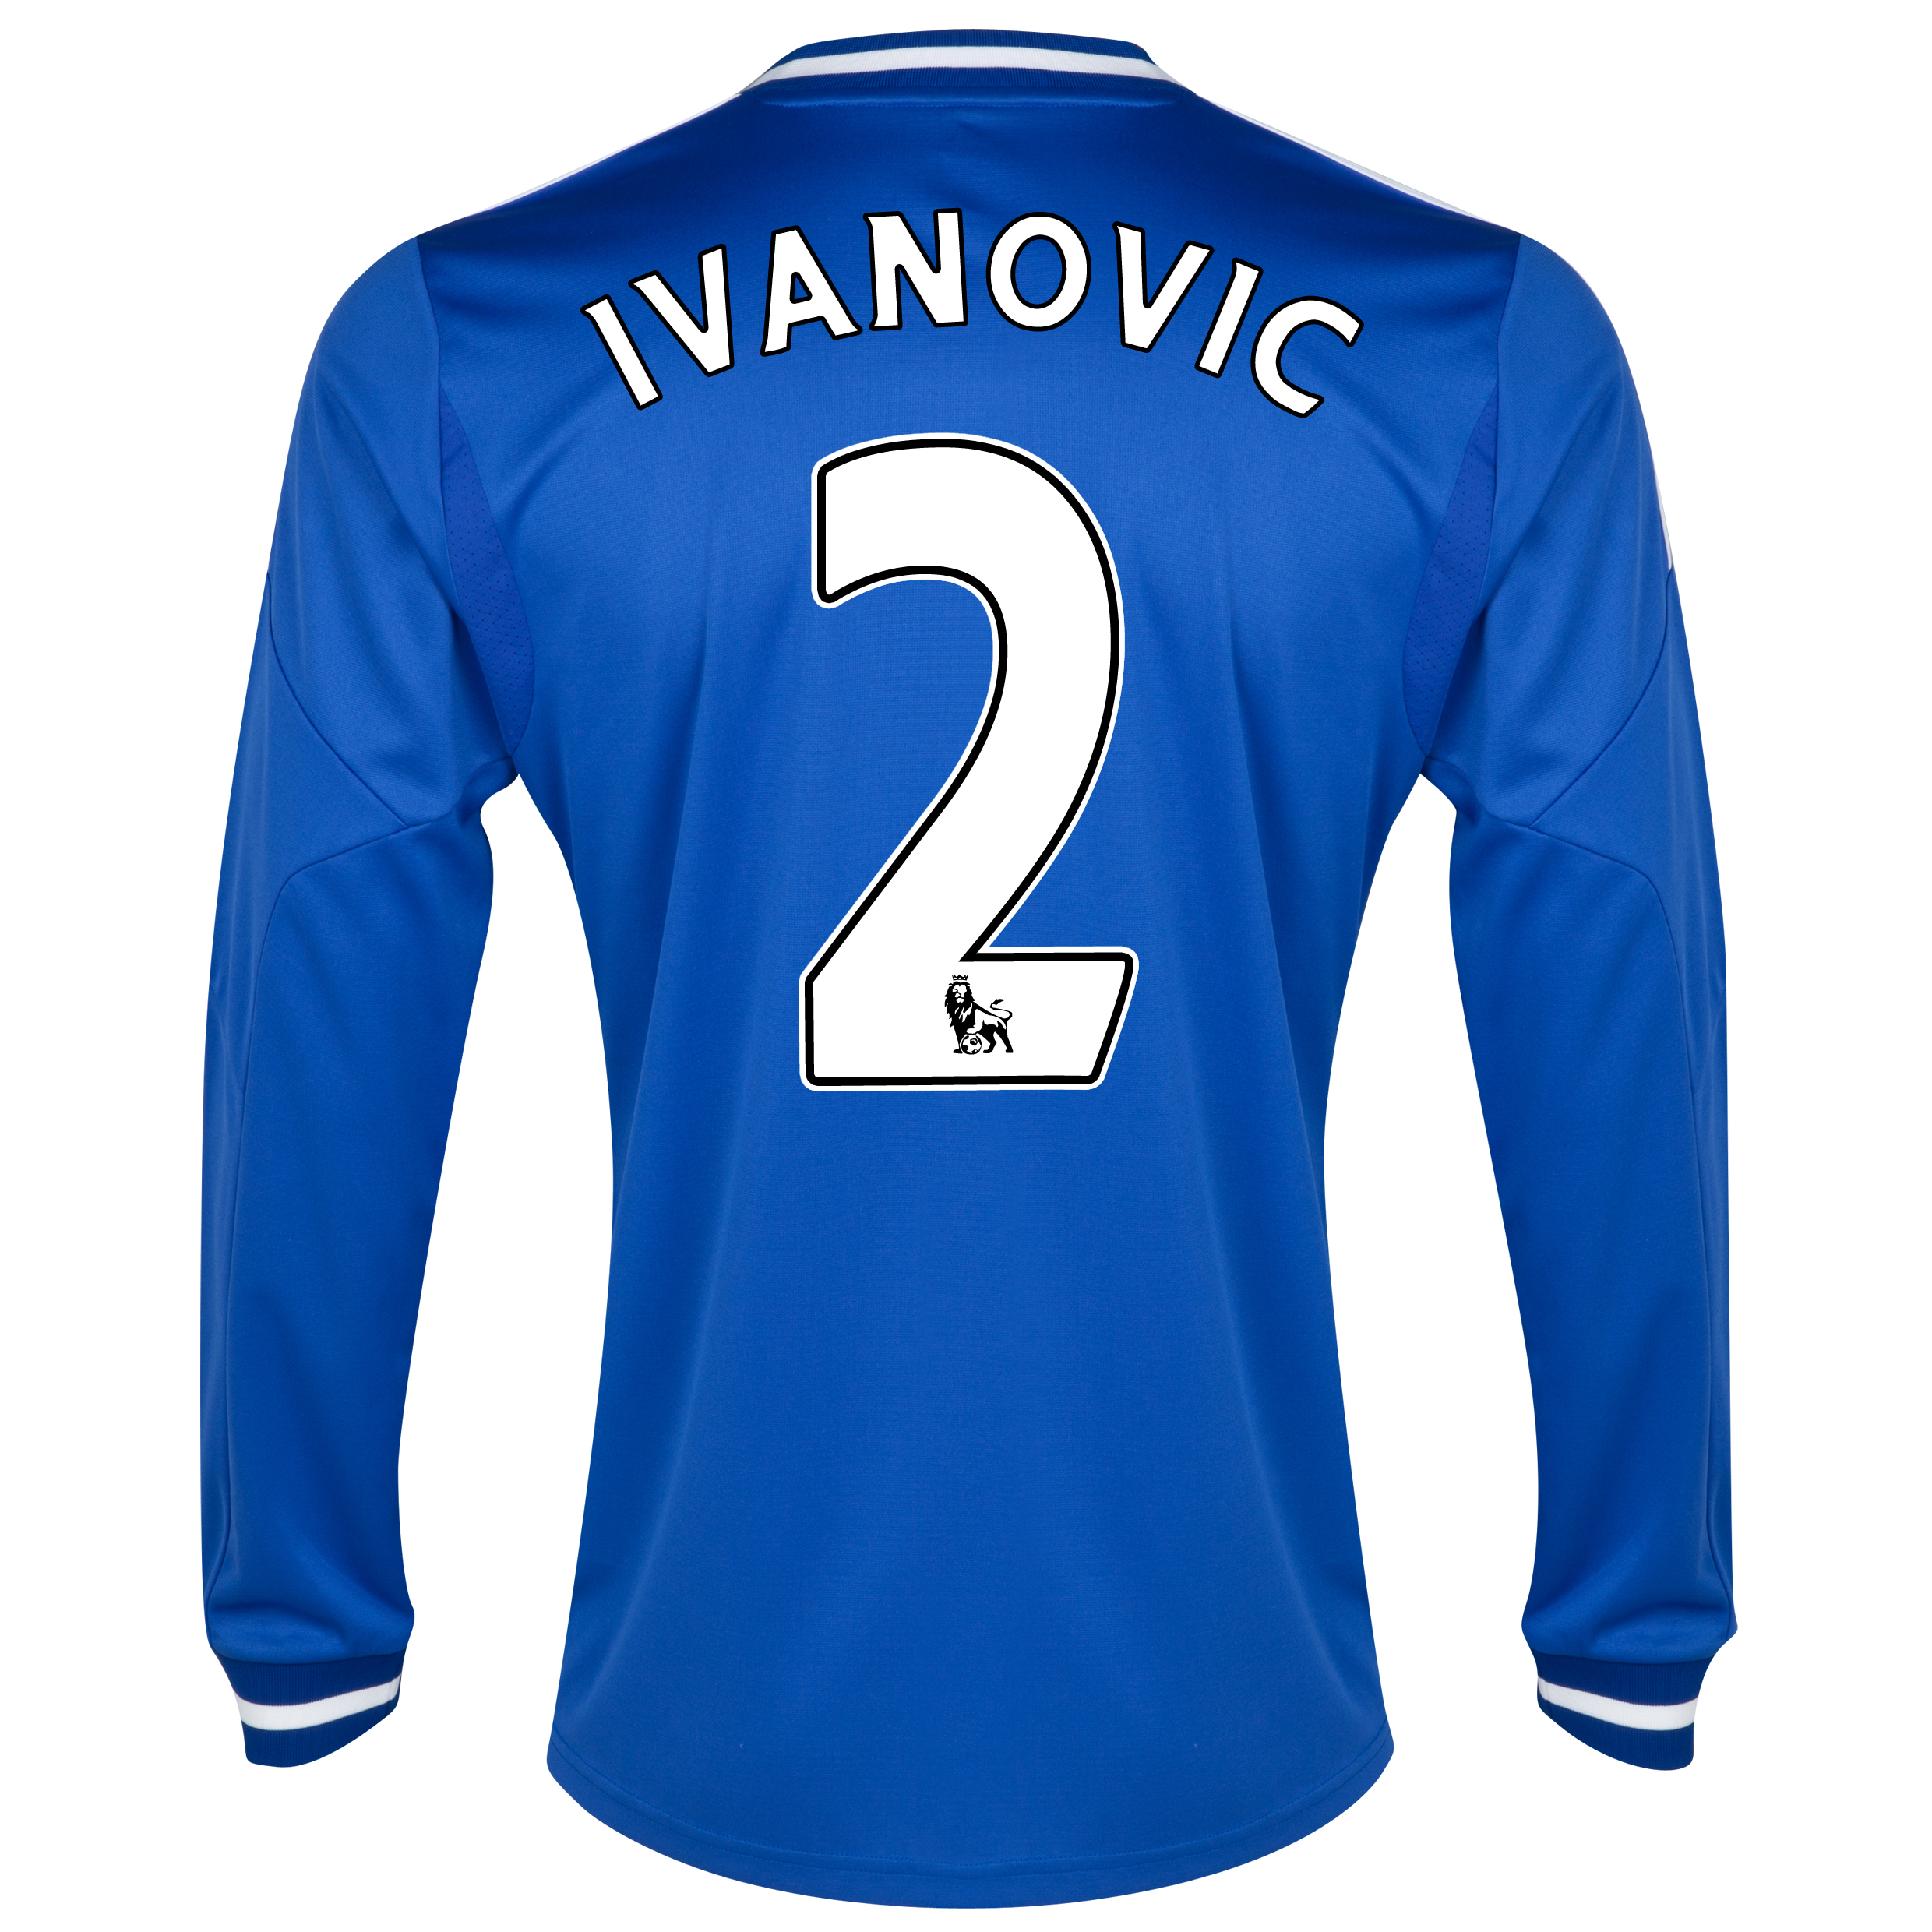 Chelsea Home Shirt 2013/14 - Long Sleeve - Kids with Ivanovic 2 printing